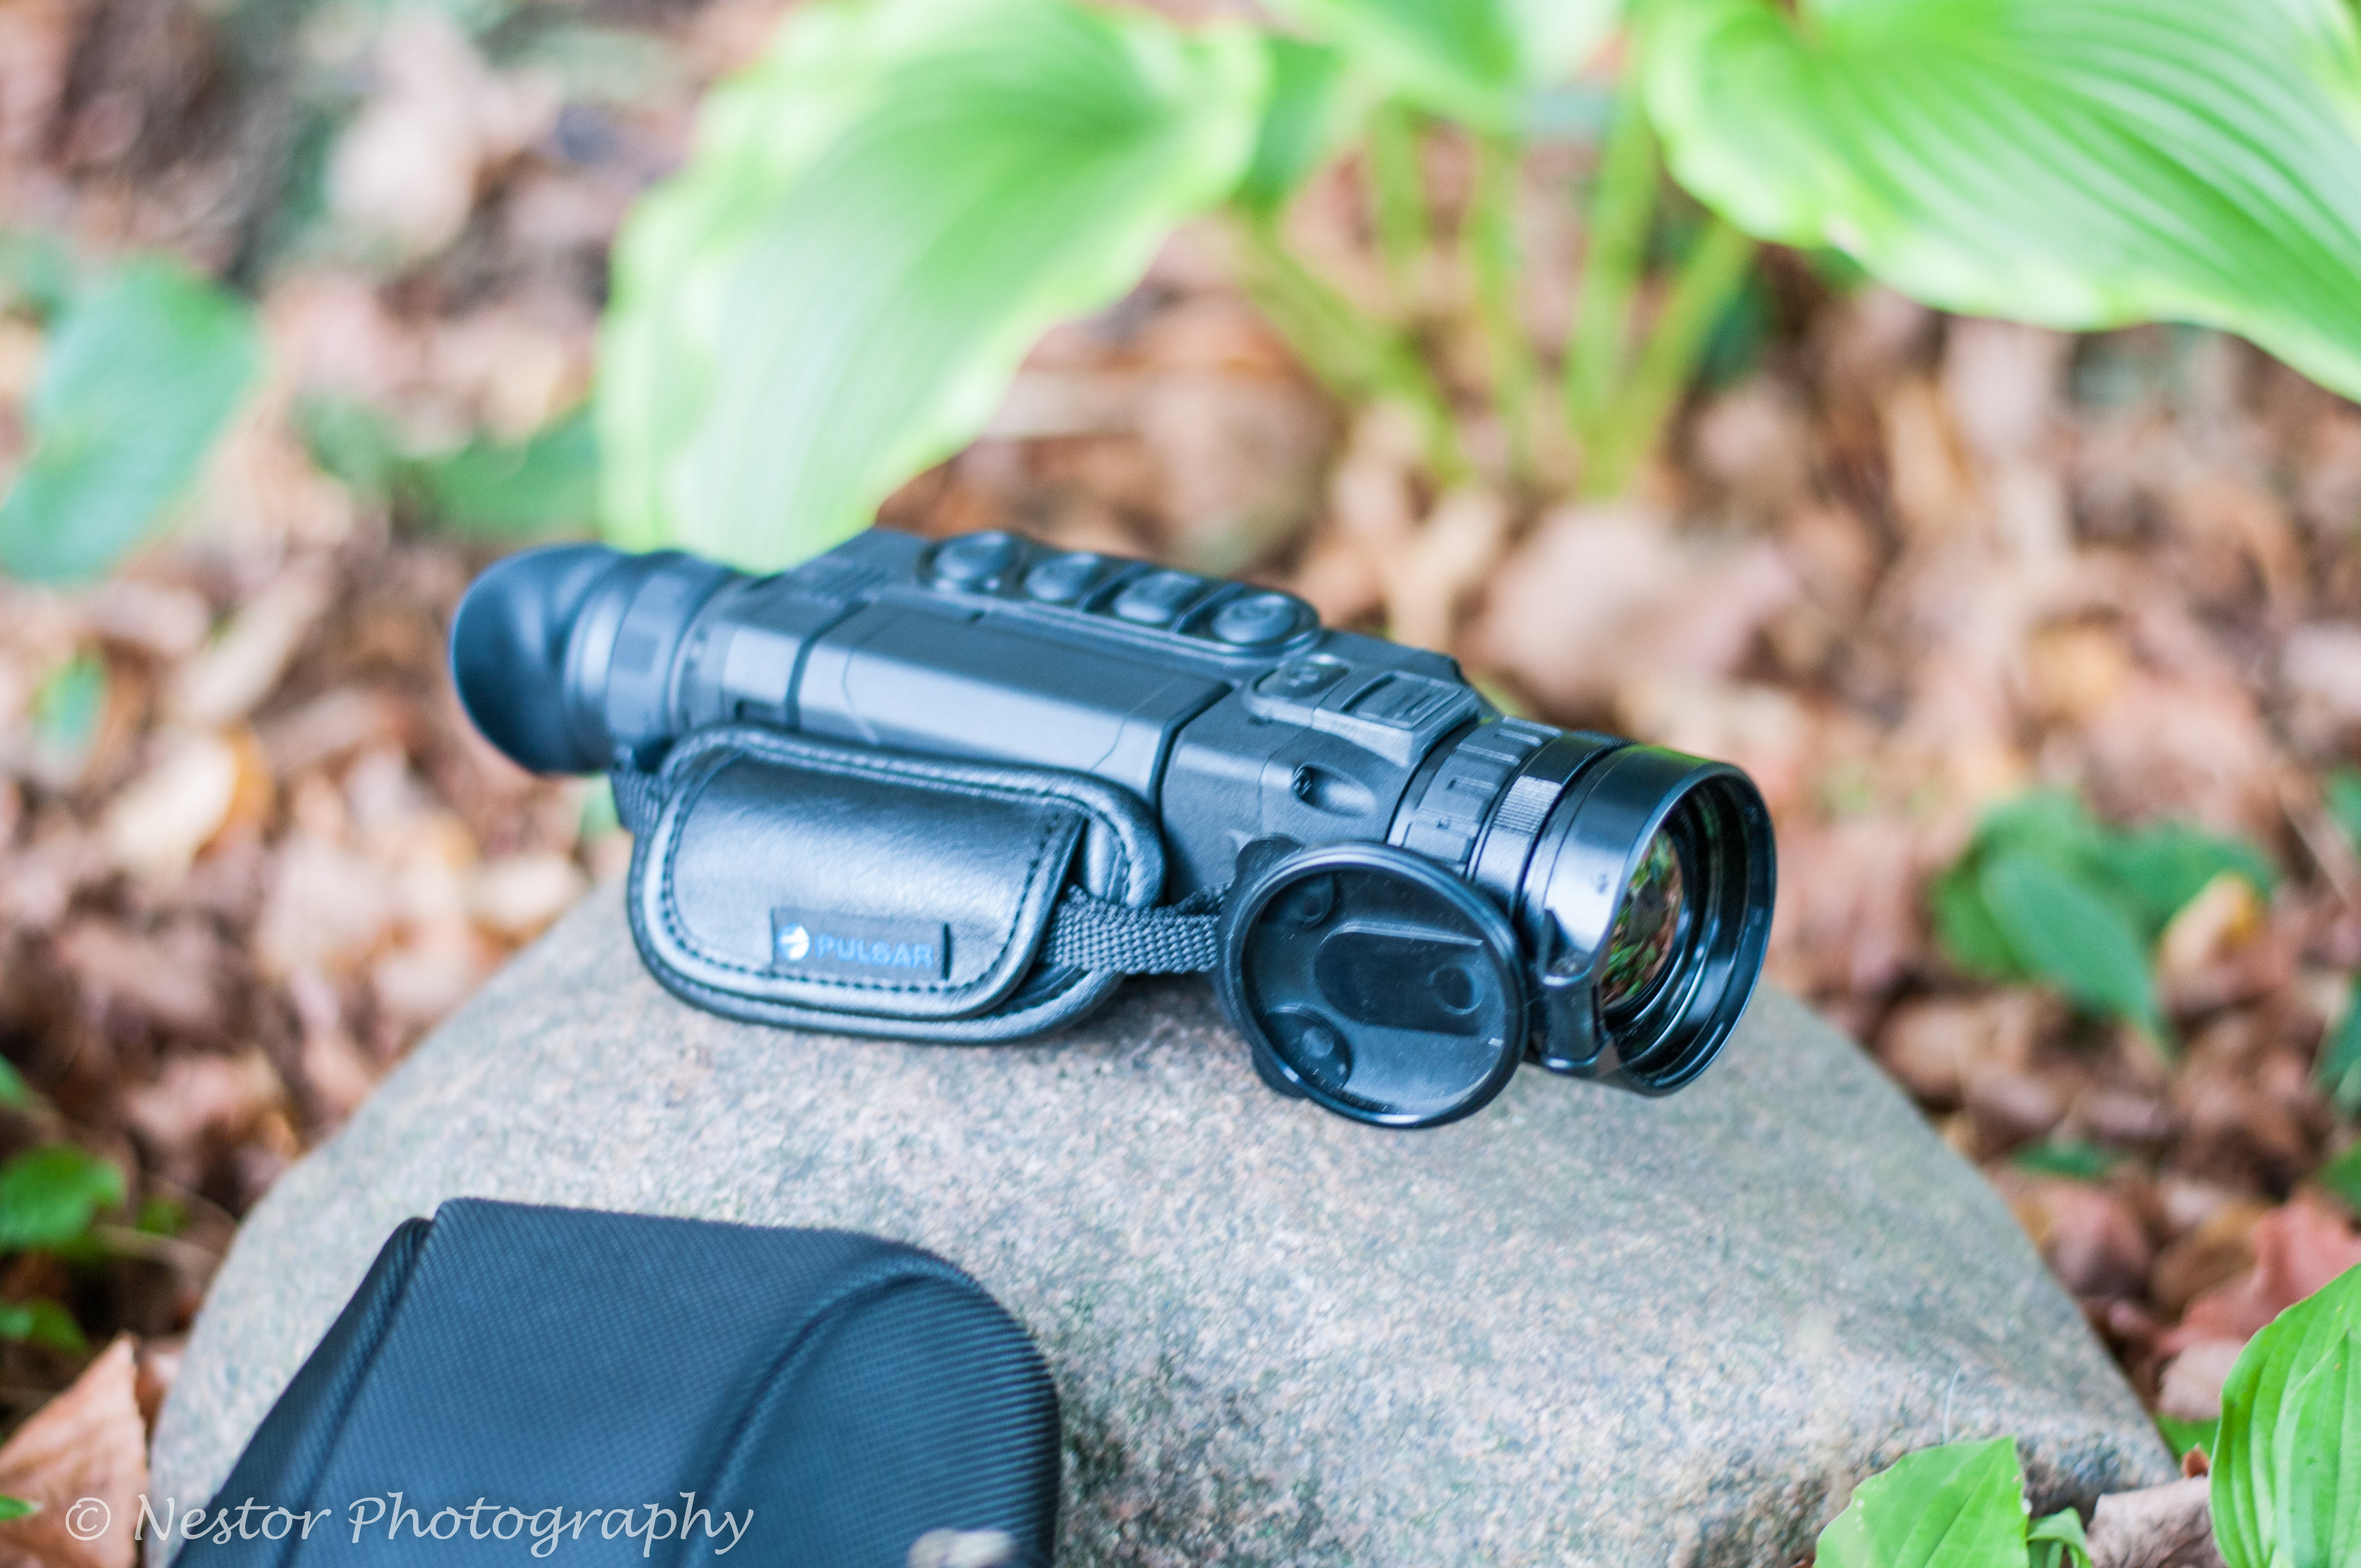 Field Test Pulsar Helion Thermal Imaging Scope ⋆ Outdoor